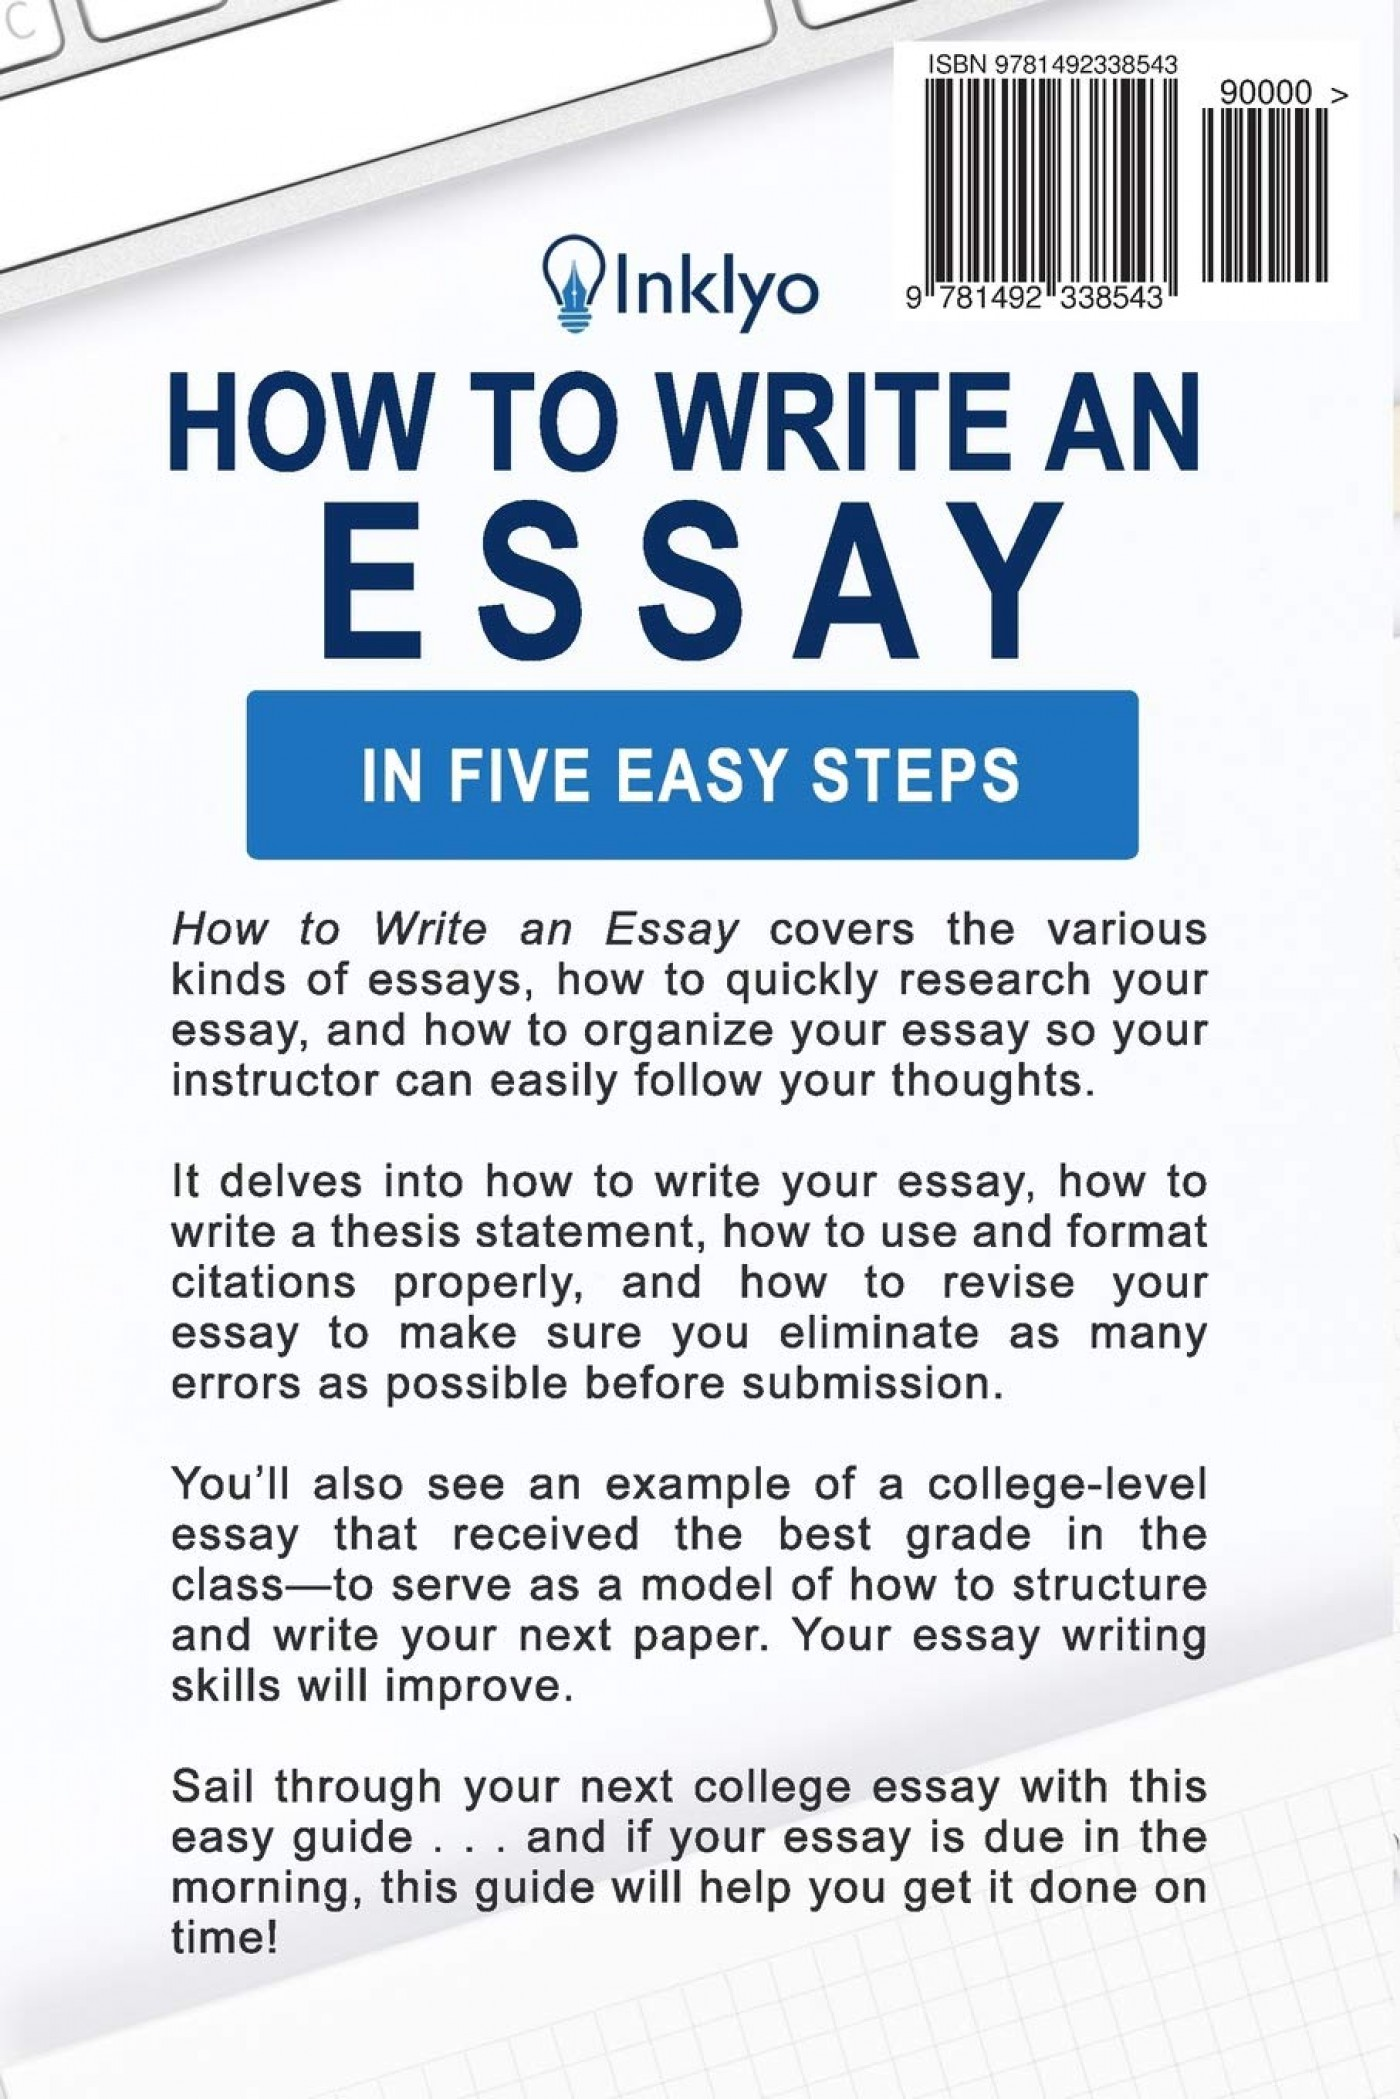 002 How To Write An Essay Example Shocking About Myself For A Scholarship Excellent Conclusion Pdf 1400